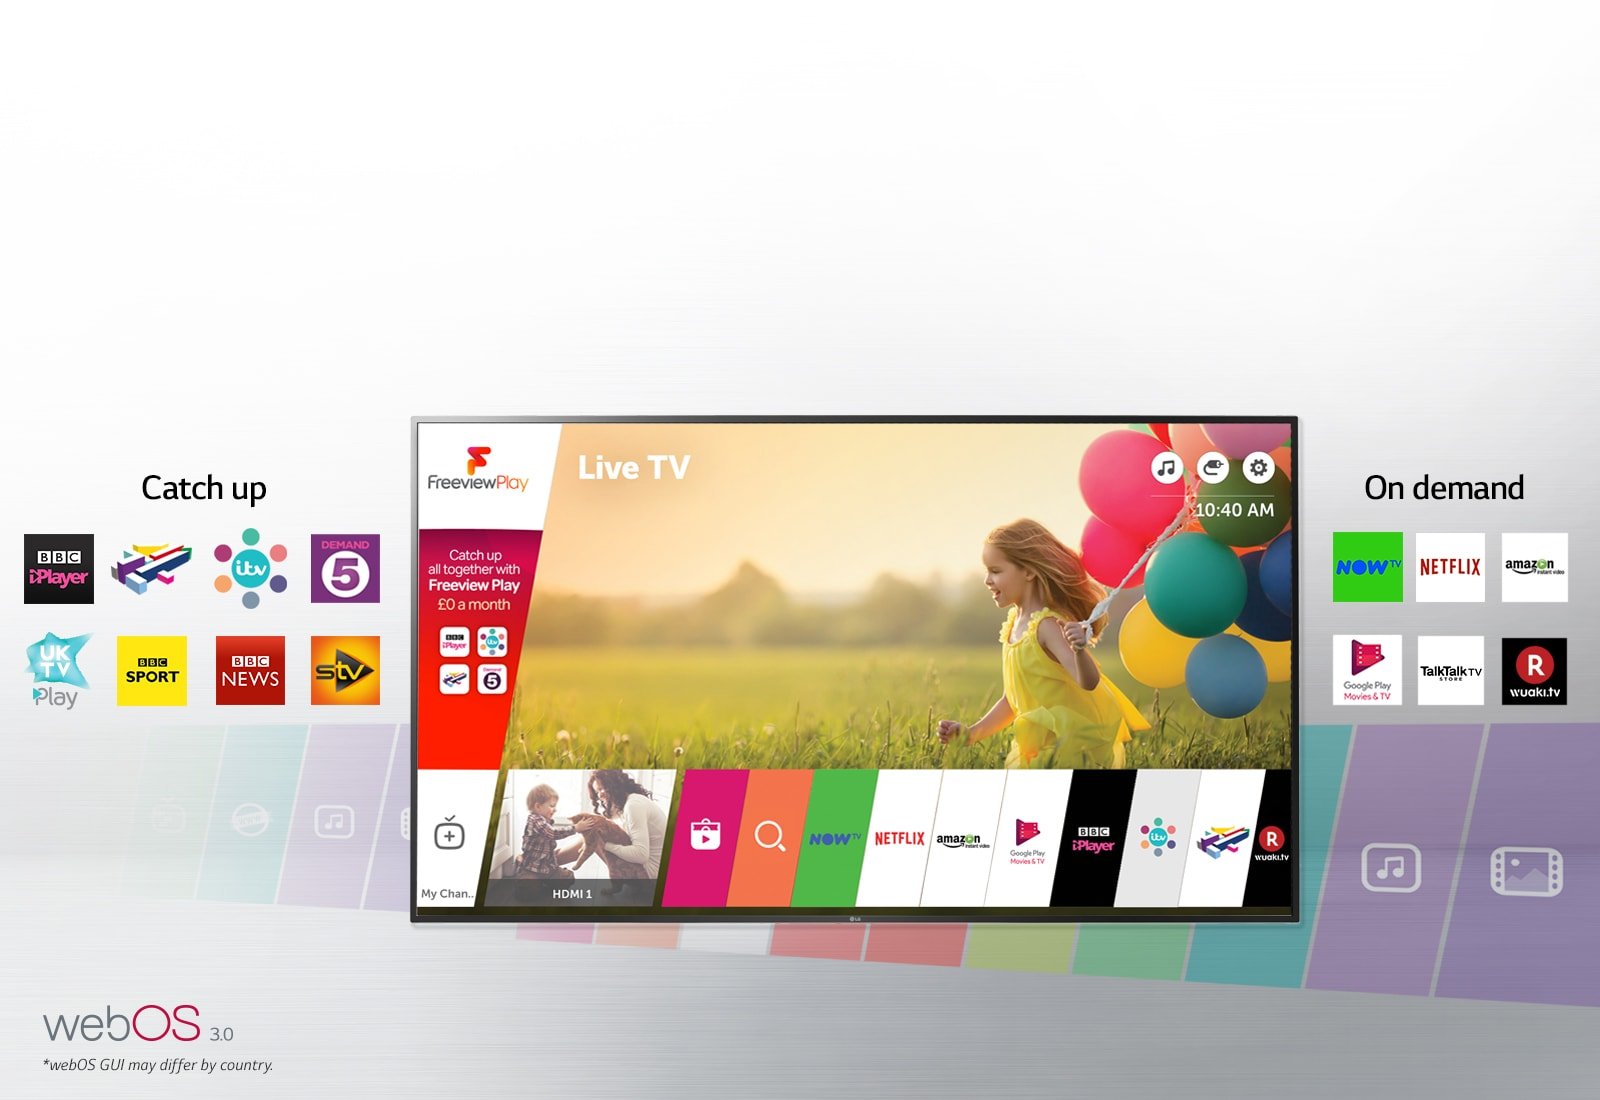 http://www.lg.com/uk/images/TV/features/11_SuperUHD_Feature_webOS-freeview.jpg